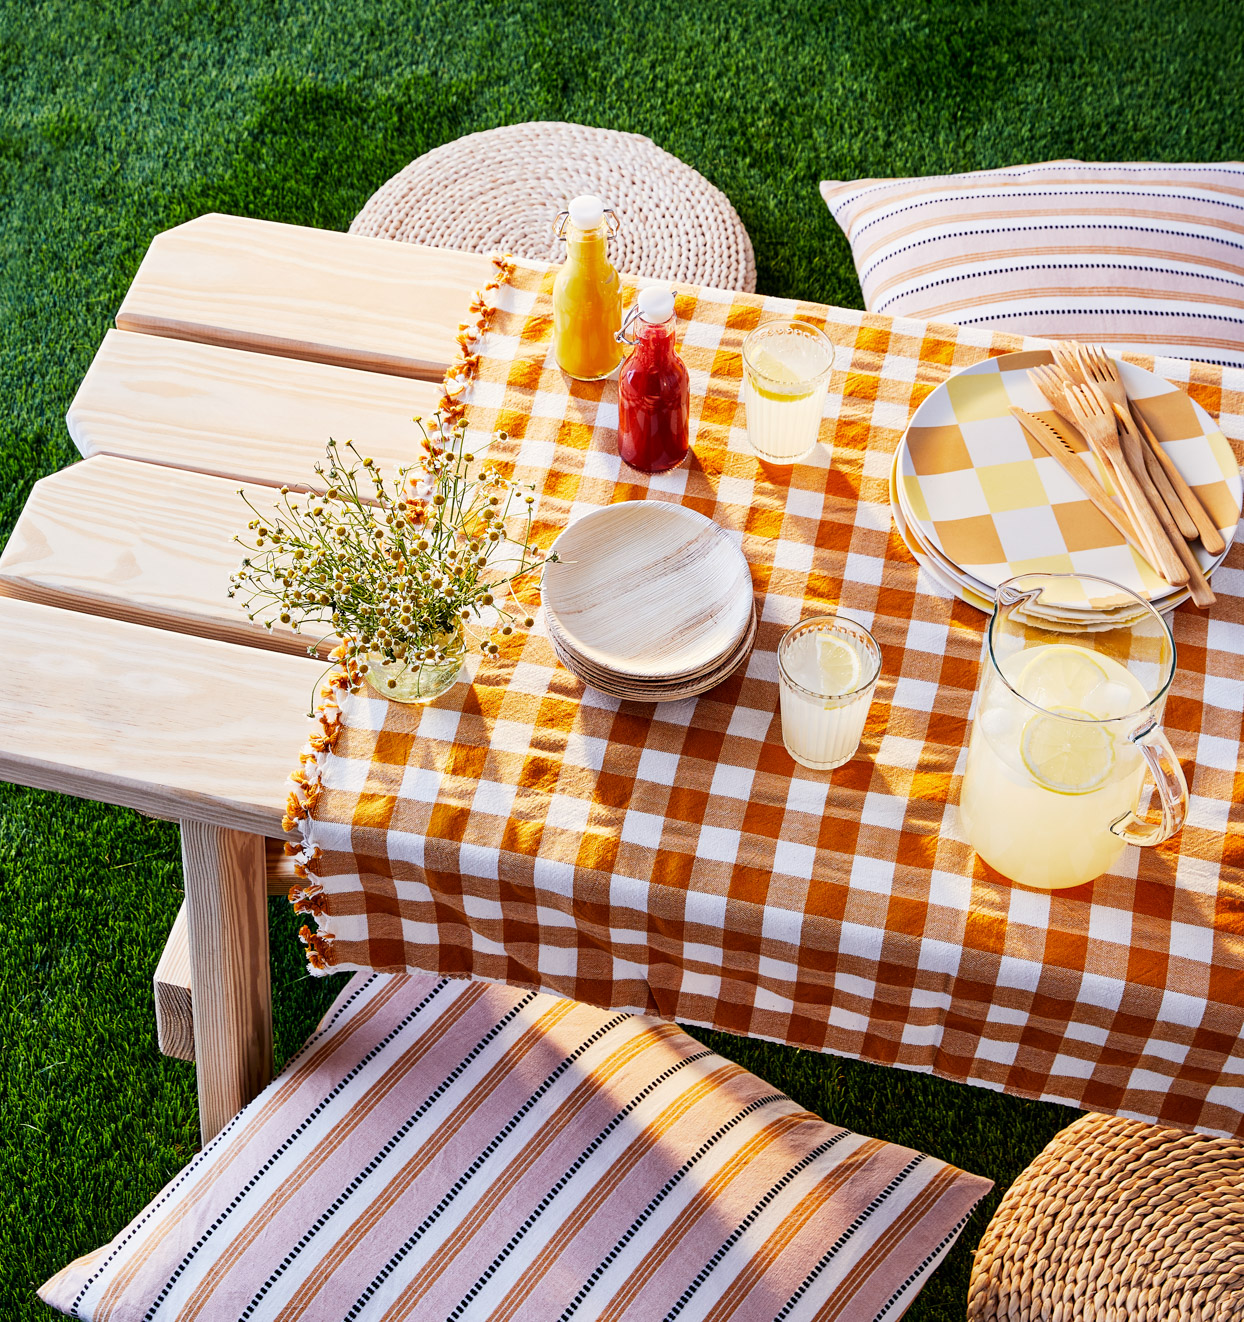 wooden picnic table with checkered cloth